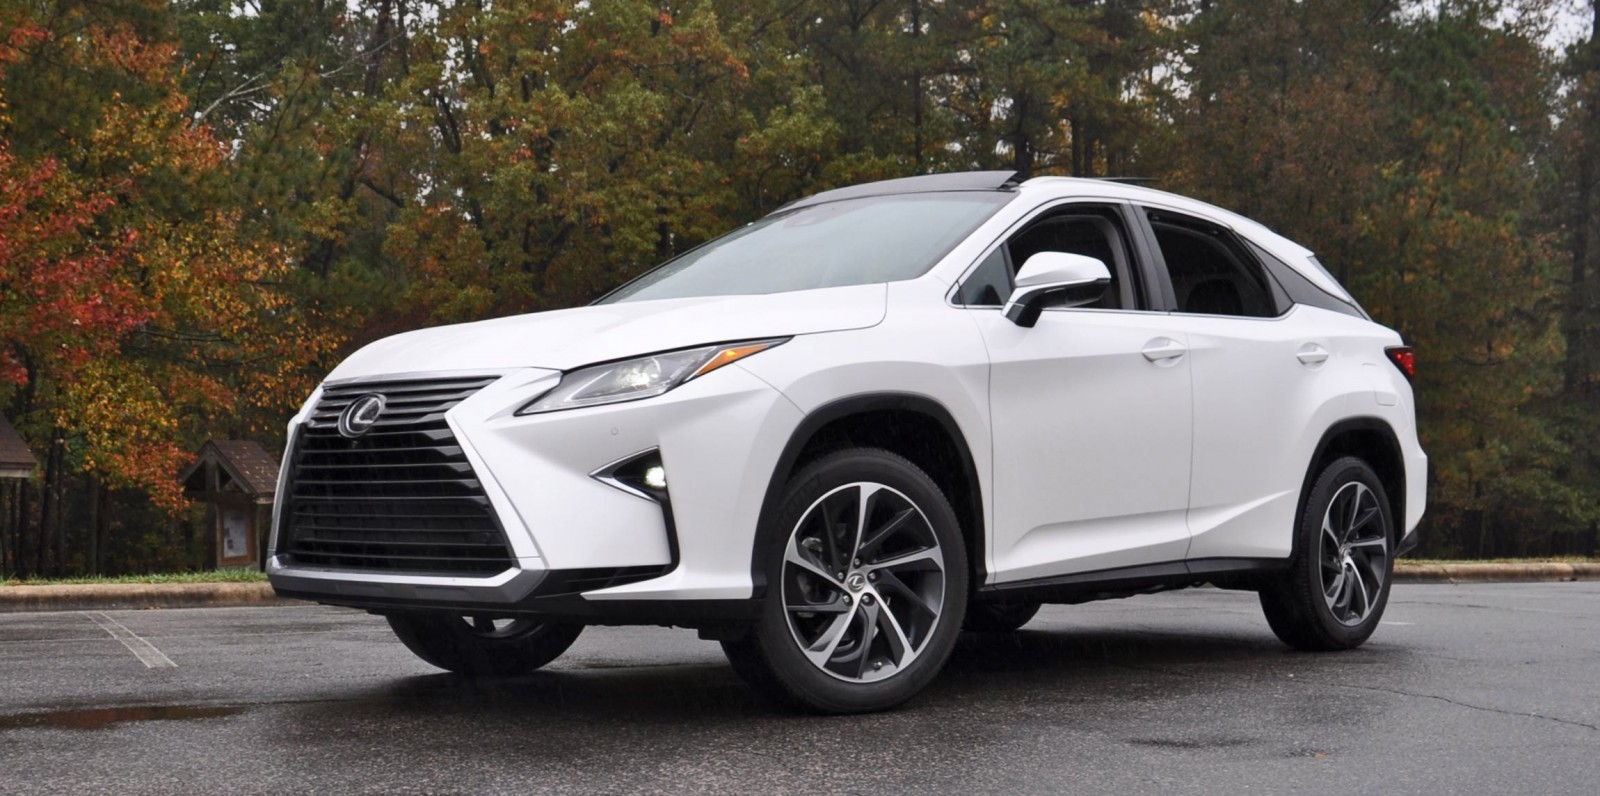 2016 lexus rx350 eminent white pearl 41. Black Bedroom Furniture Sets. Home Design Ideas